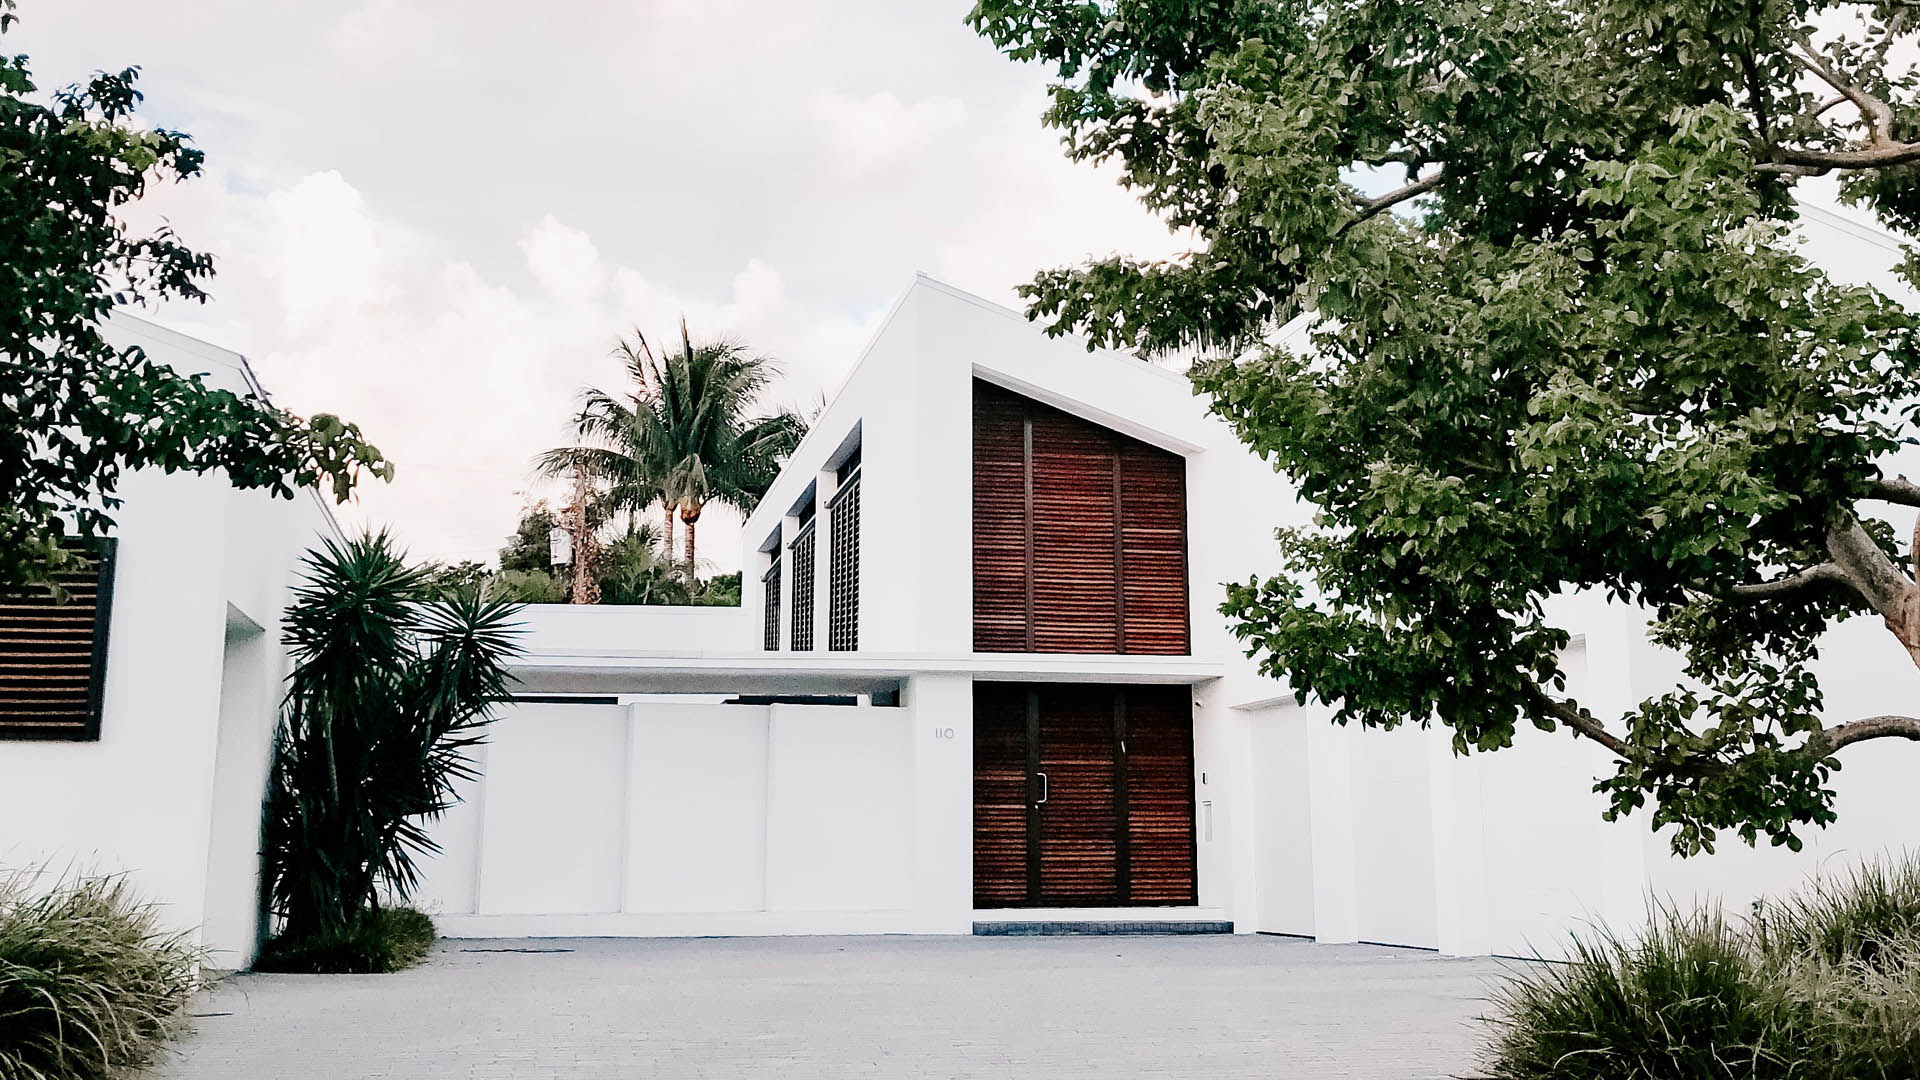 An image of a modern Florida House representing the Homestead Laws in Florida.